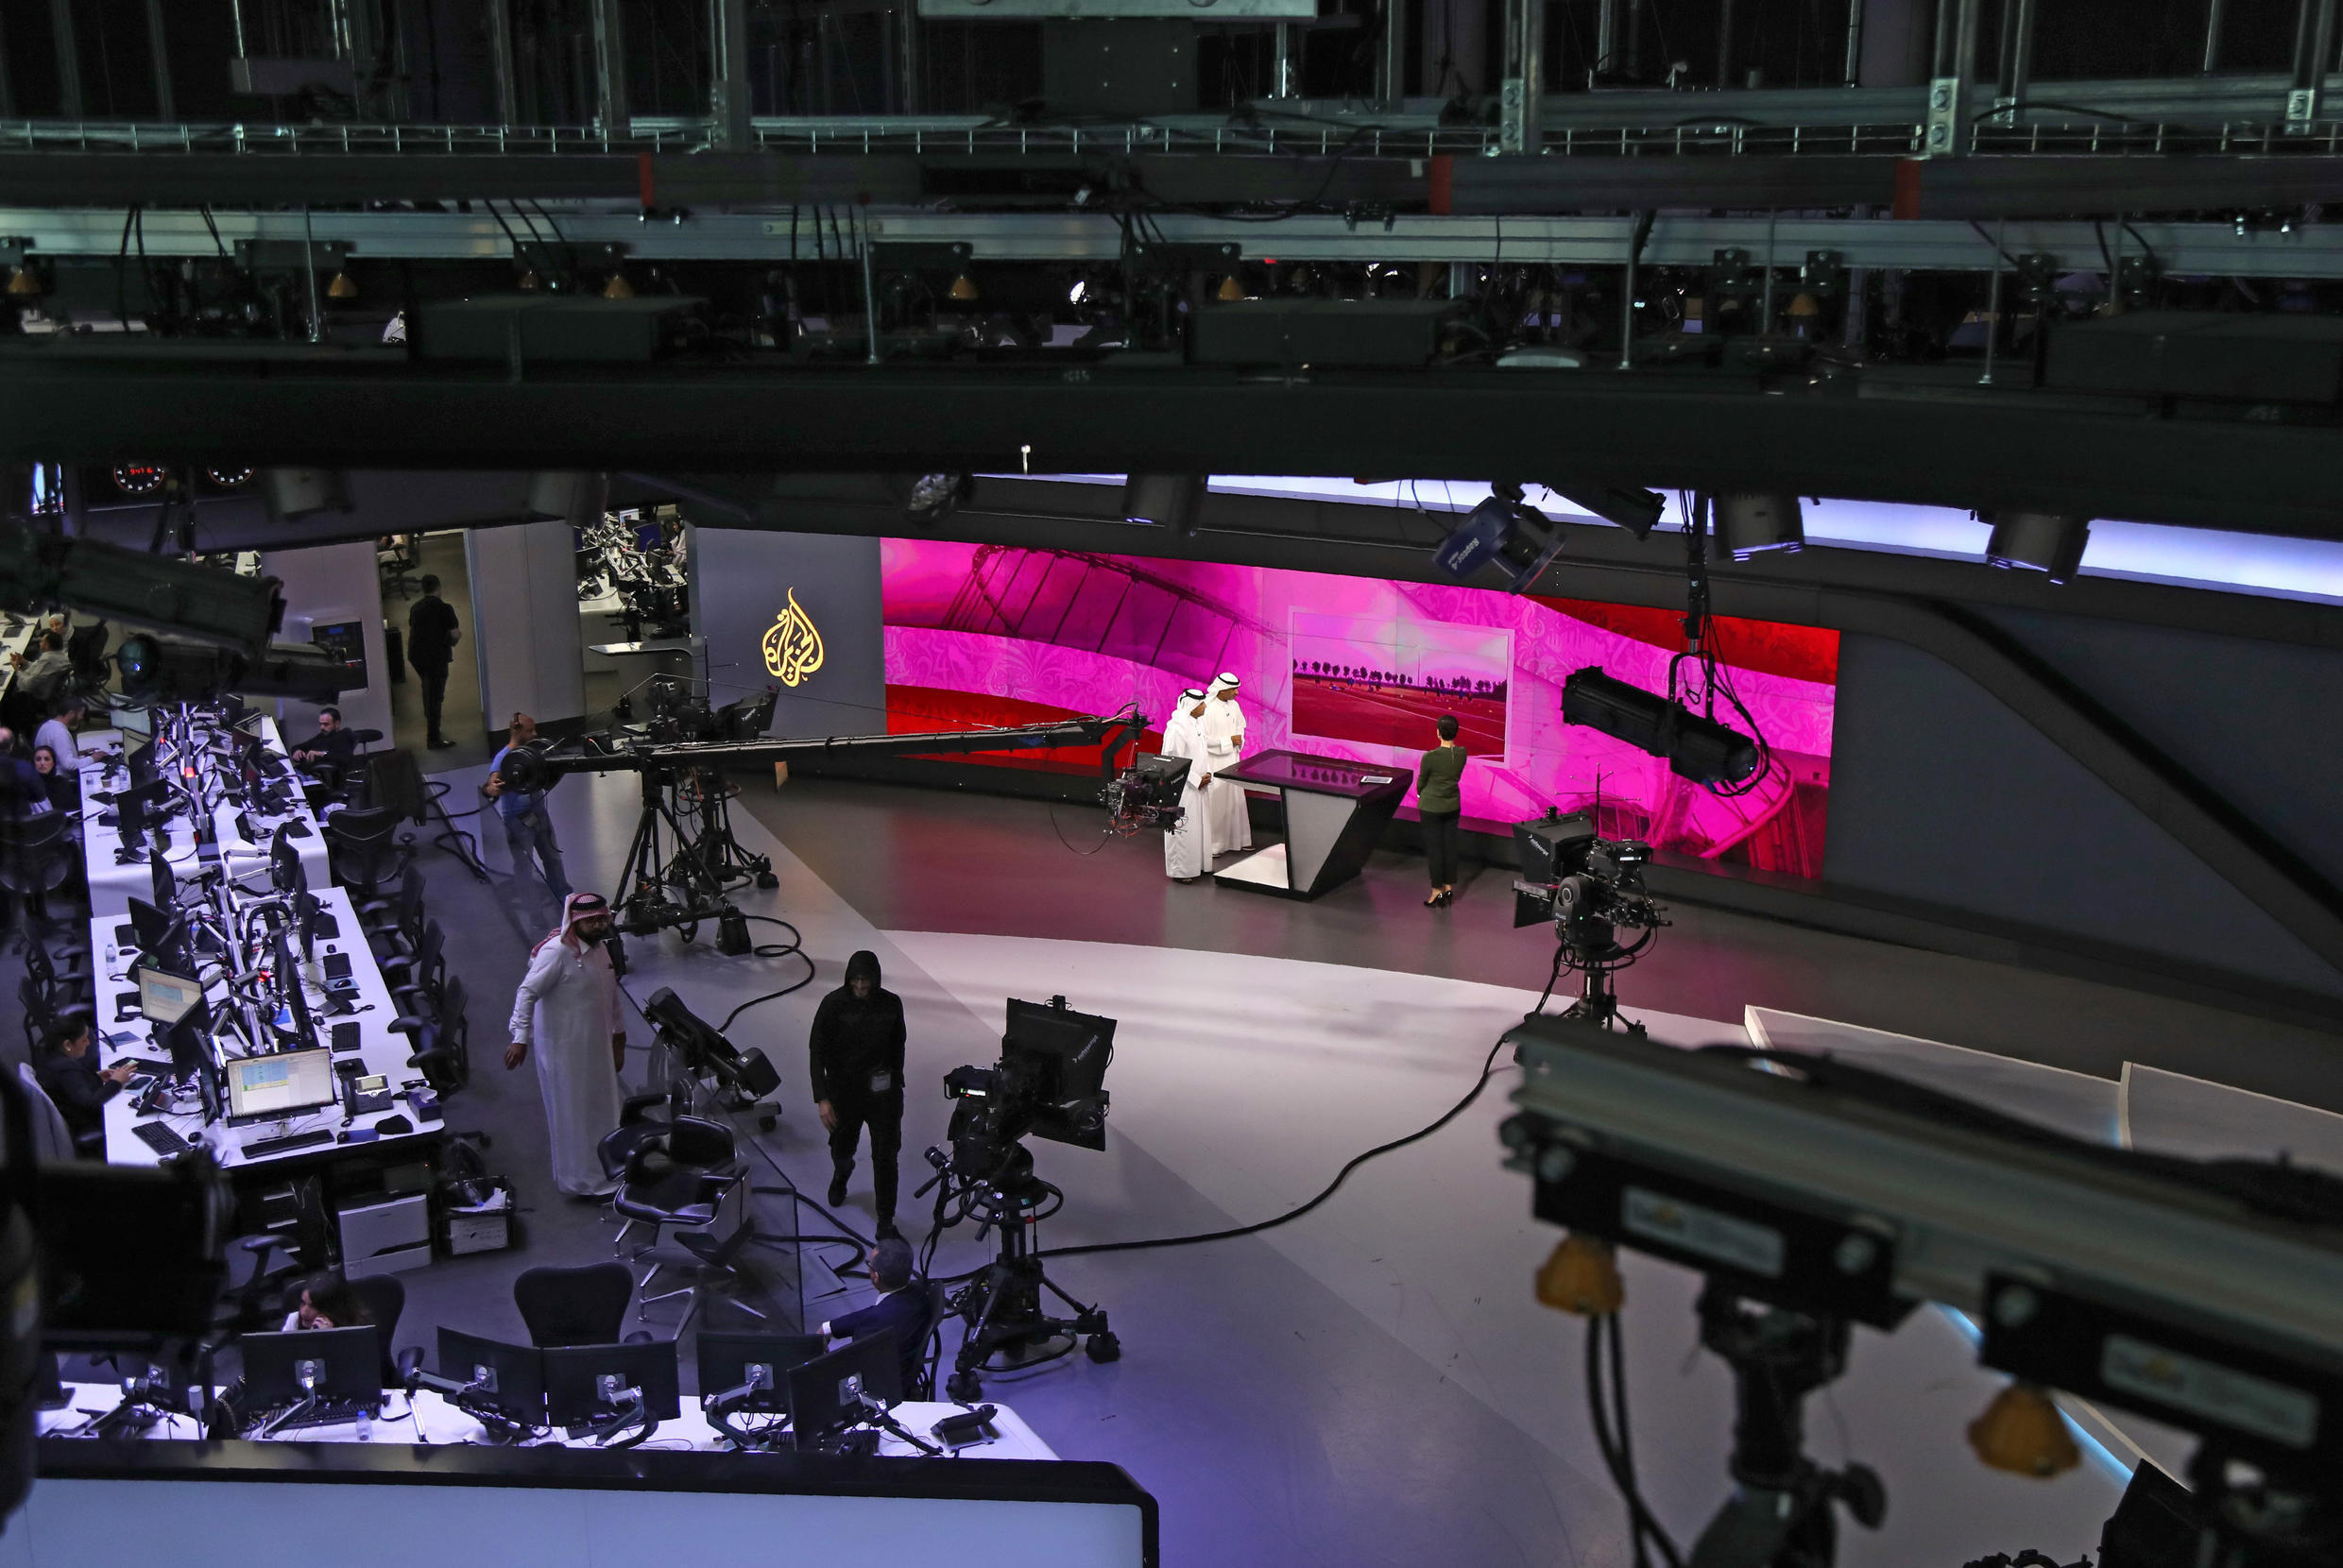 Al-Jazeera said it approached Citizen Lab in January after receiving suspicious messages on a device used to contact people for comment